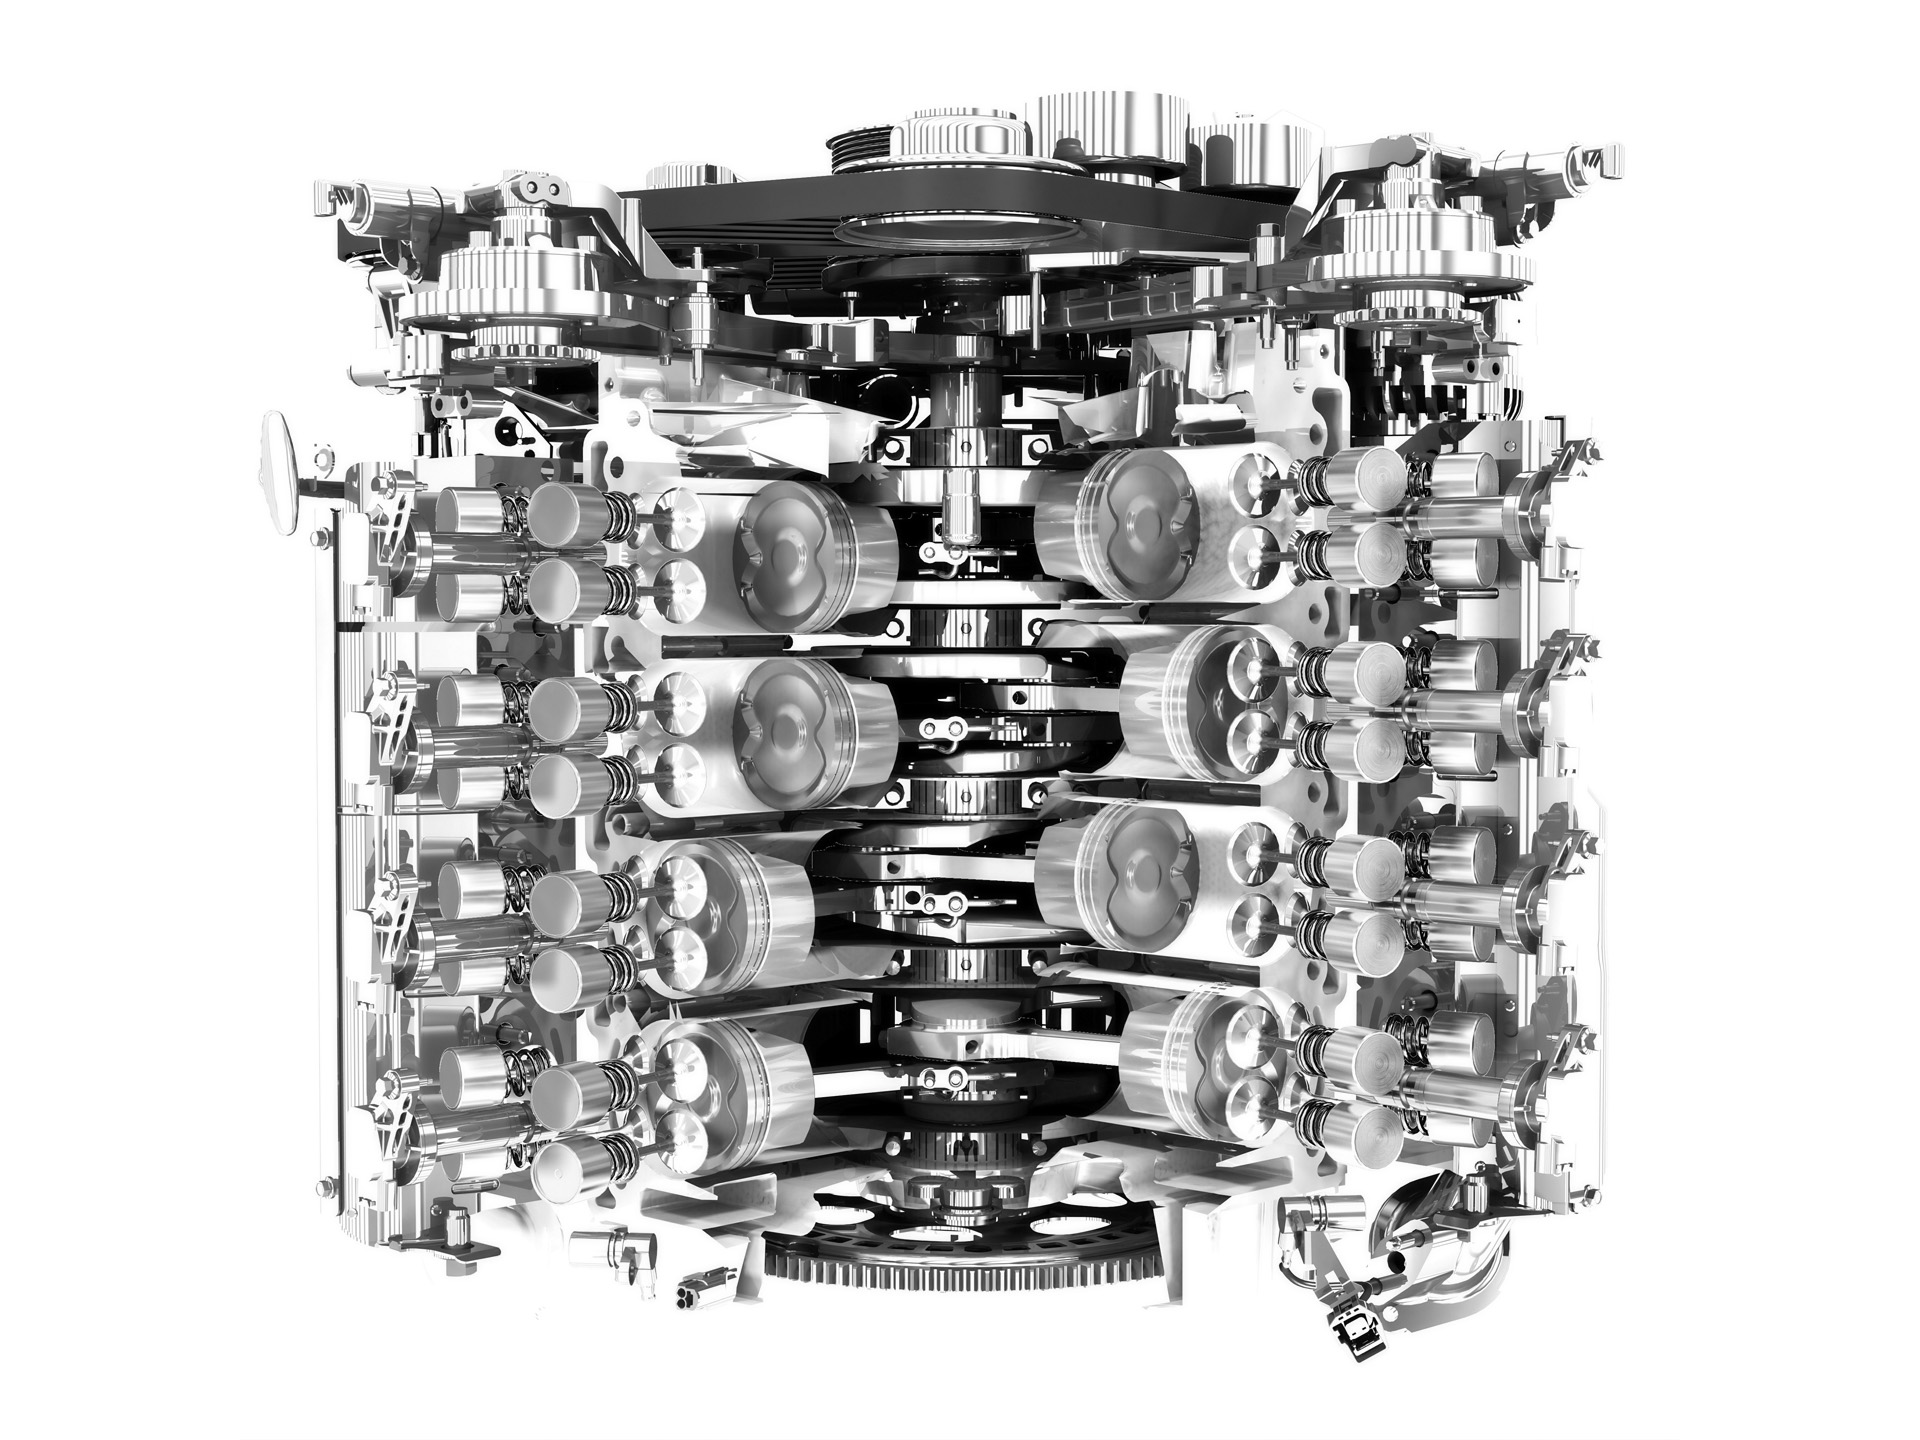 Sample P229c Engine